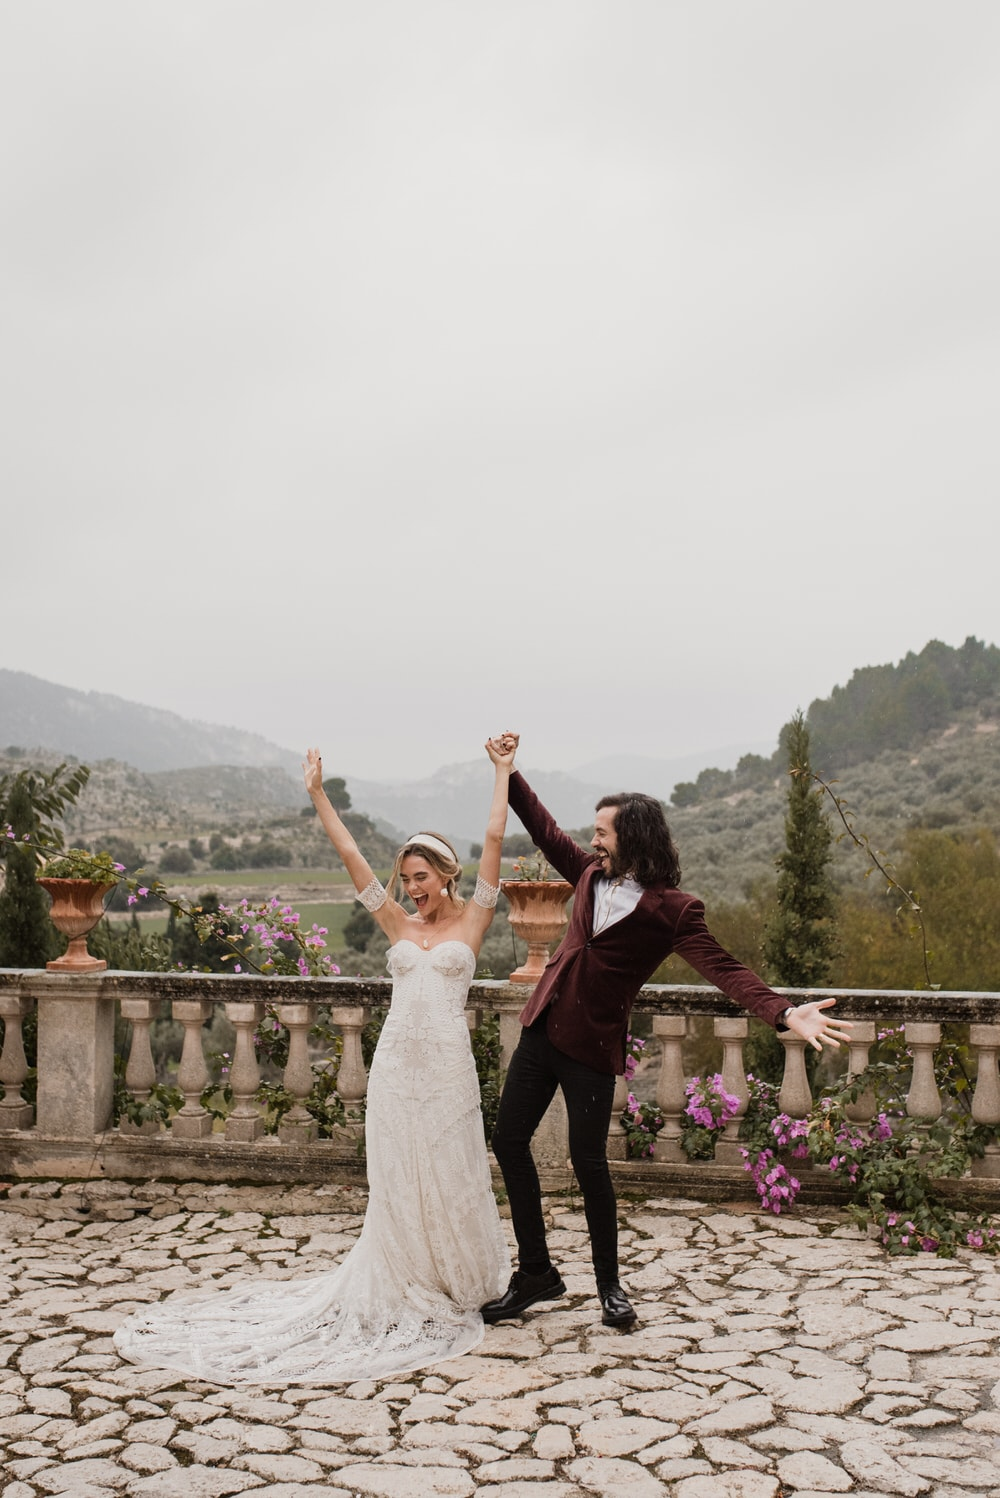 A couple celebrating their elopement in Mallorca, Spain